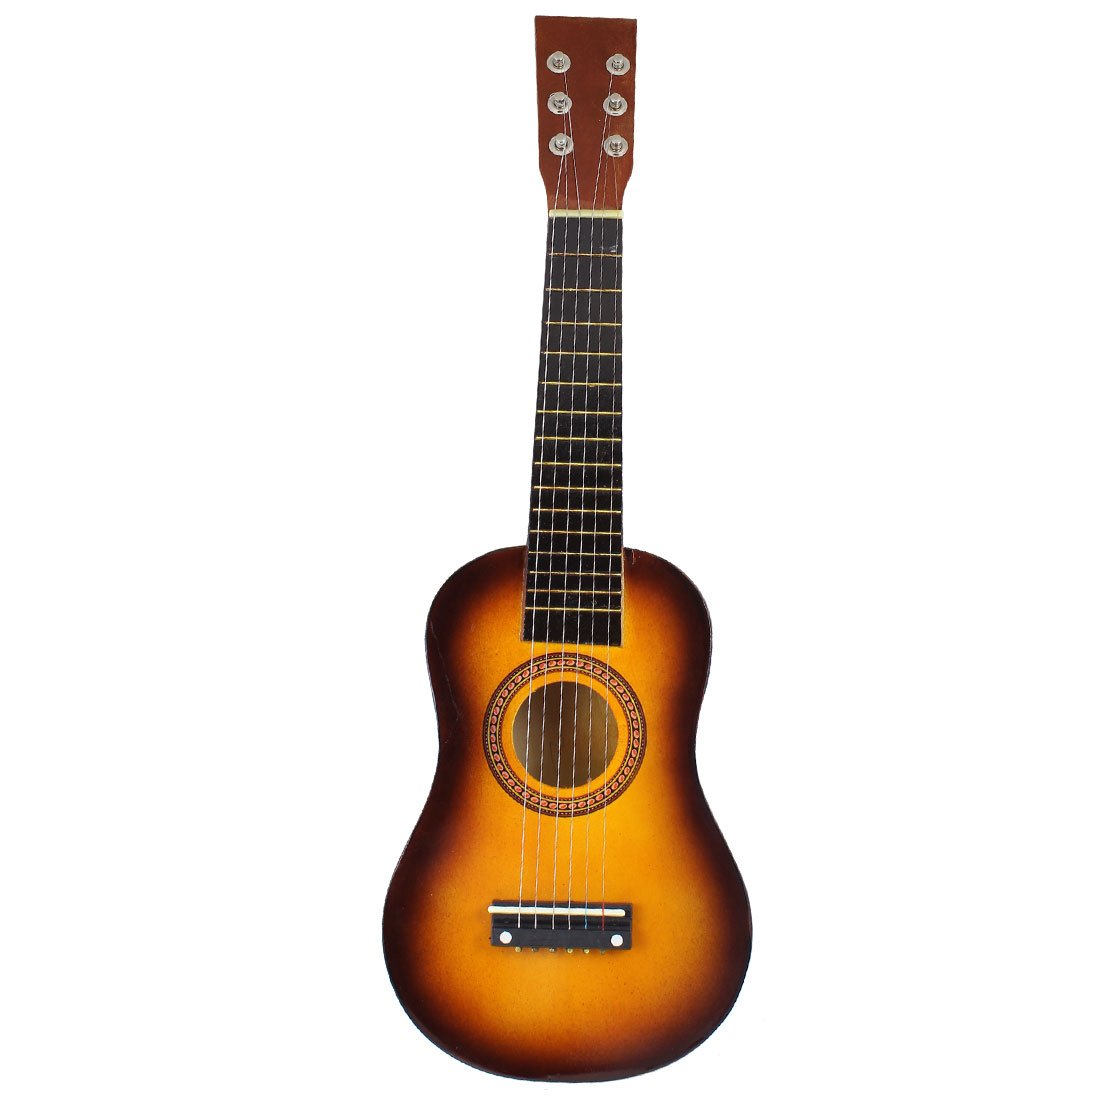 "Brown Black 6 Strings Wooden Acoustic Ukulele Guitar 22.8"" Length"